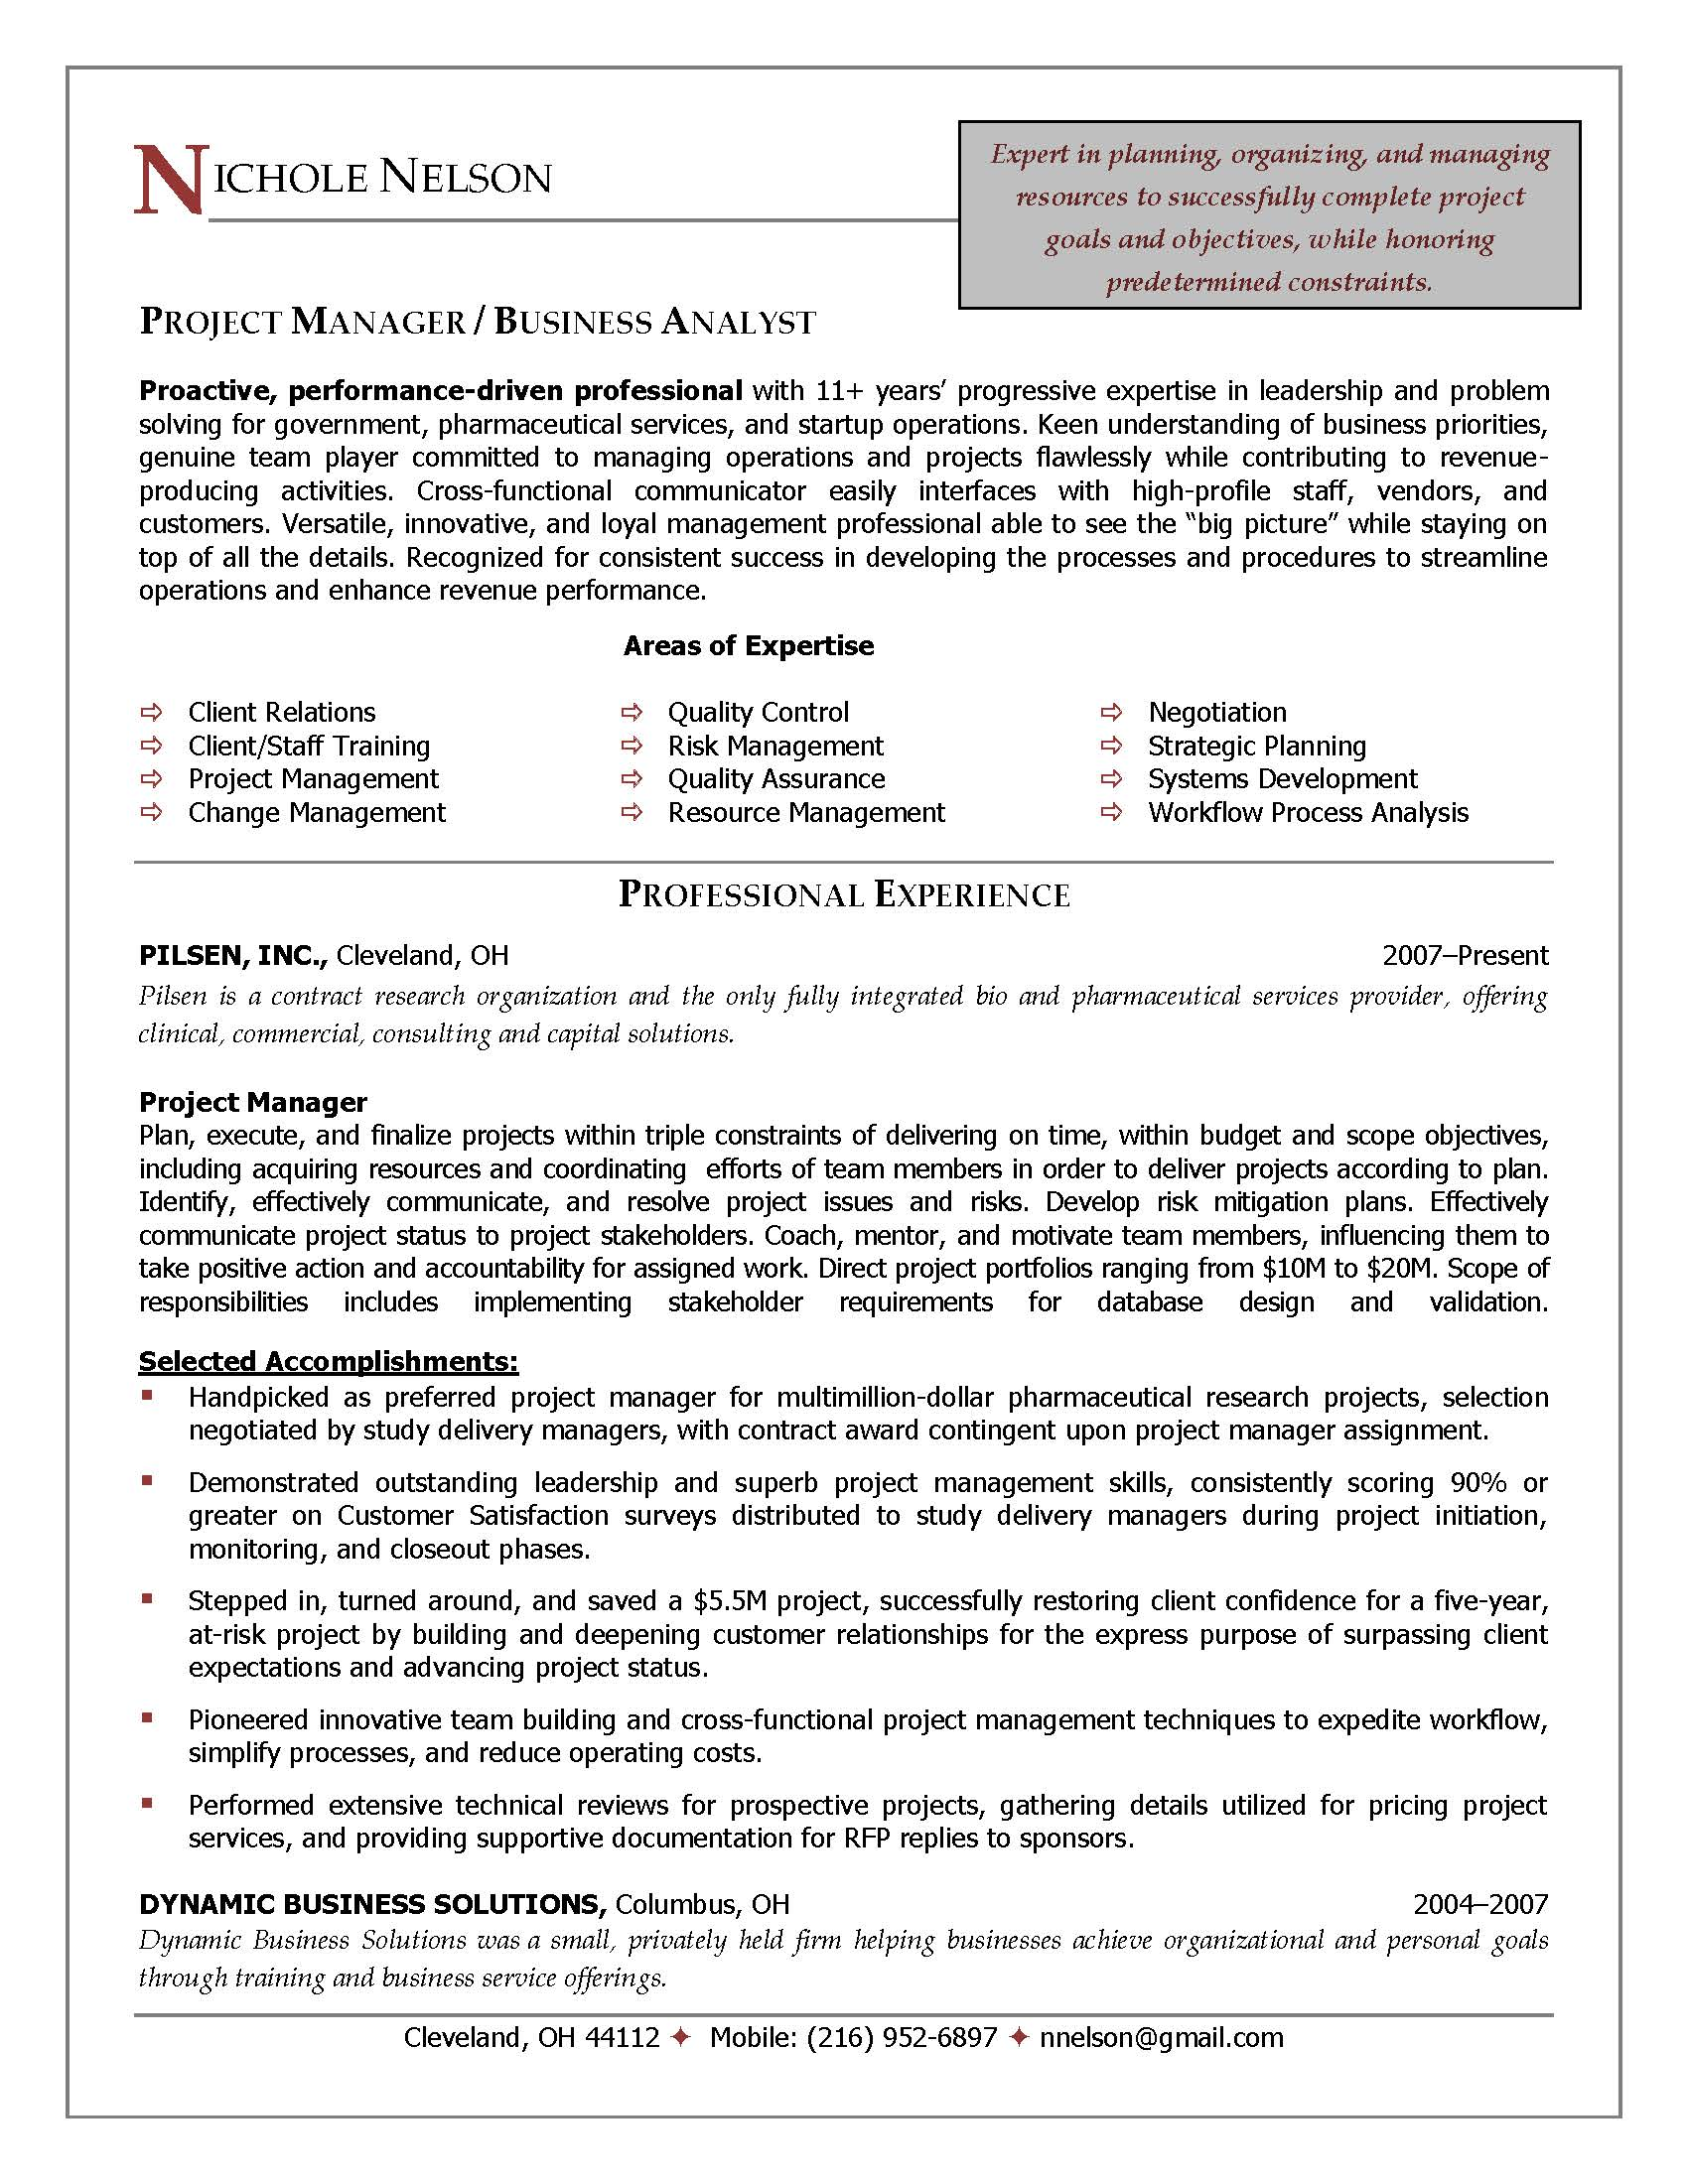 project manager resume sample provided by elite resume writing services